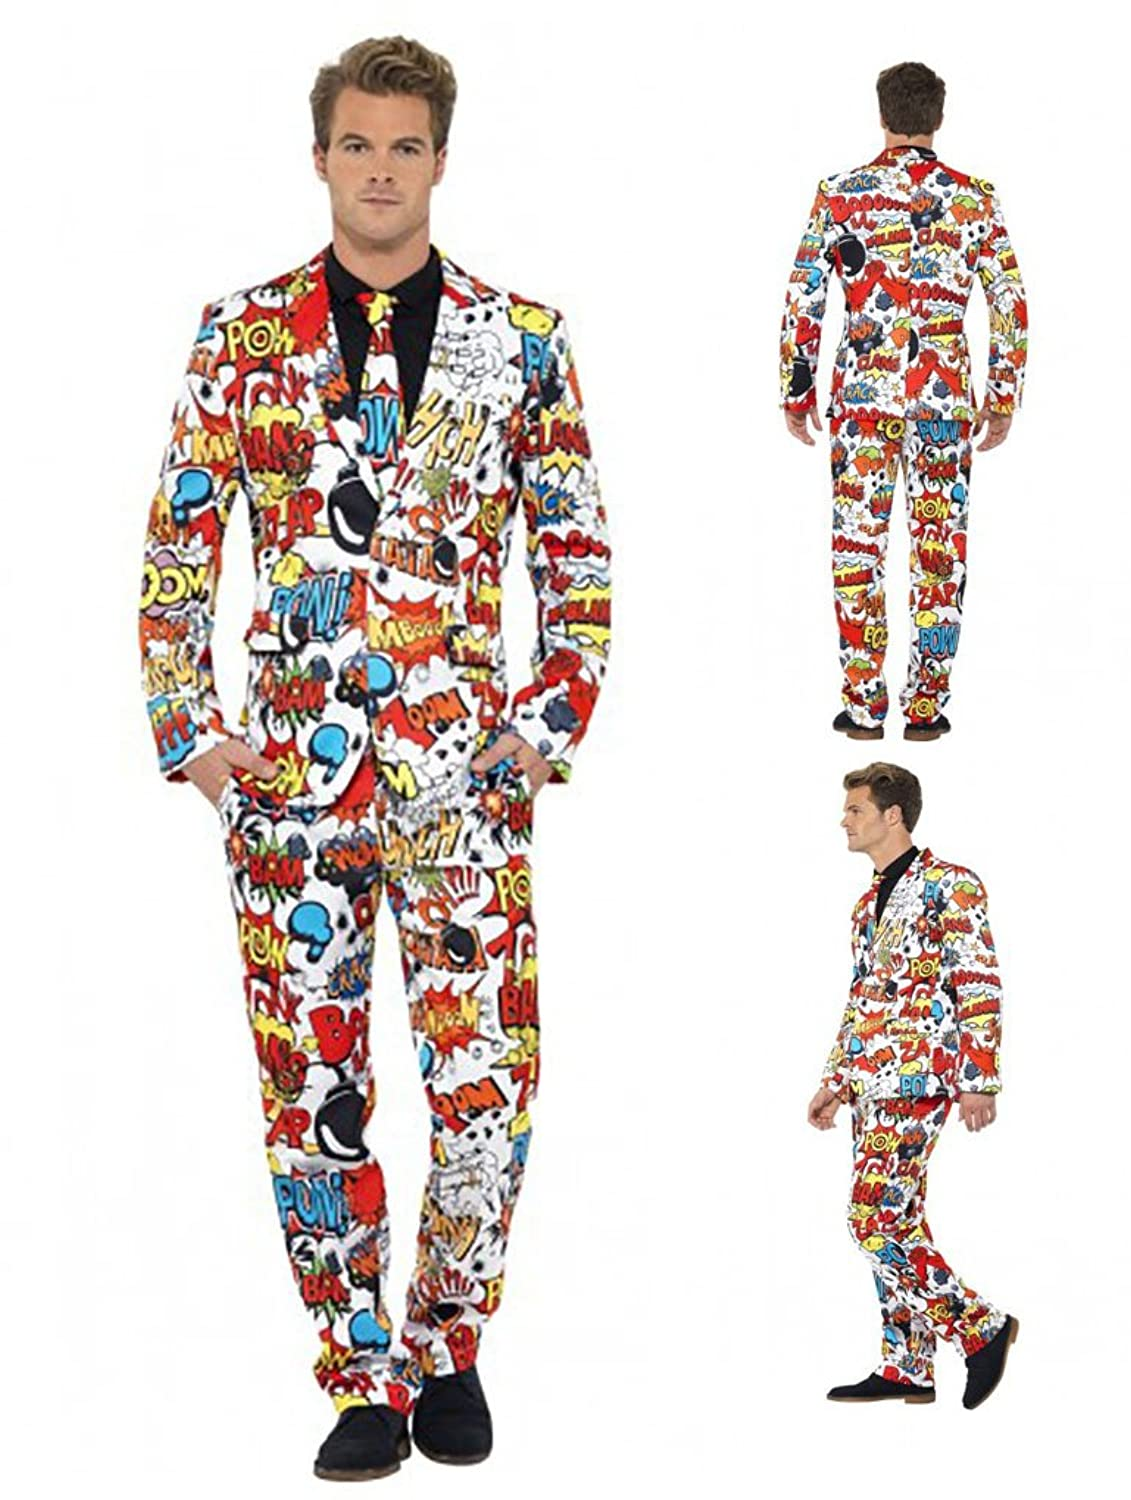 Retro Clothing for Men | Vintage Men's Fashion Comic Strip Stand Out Suit - 3 Sizes $130.99 AT vintagedancer.com